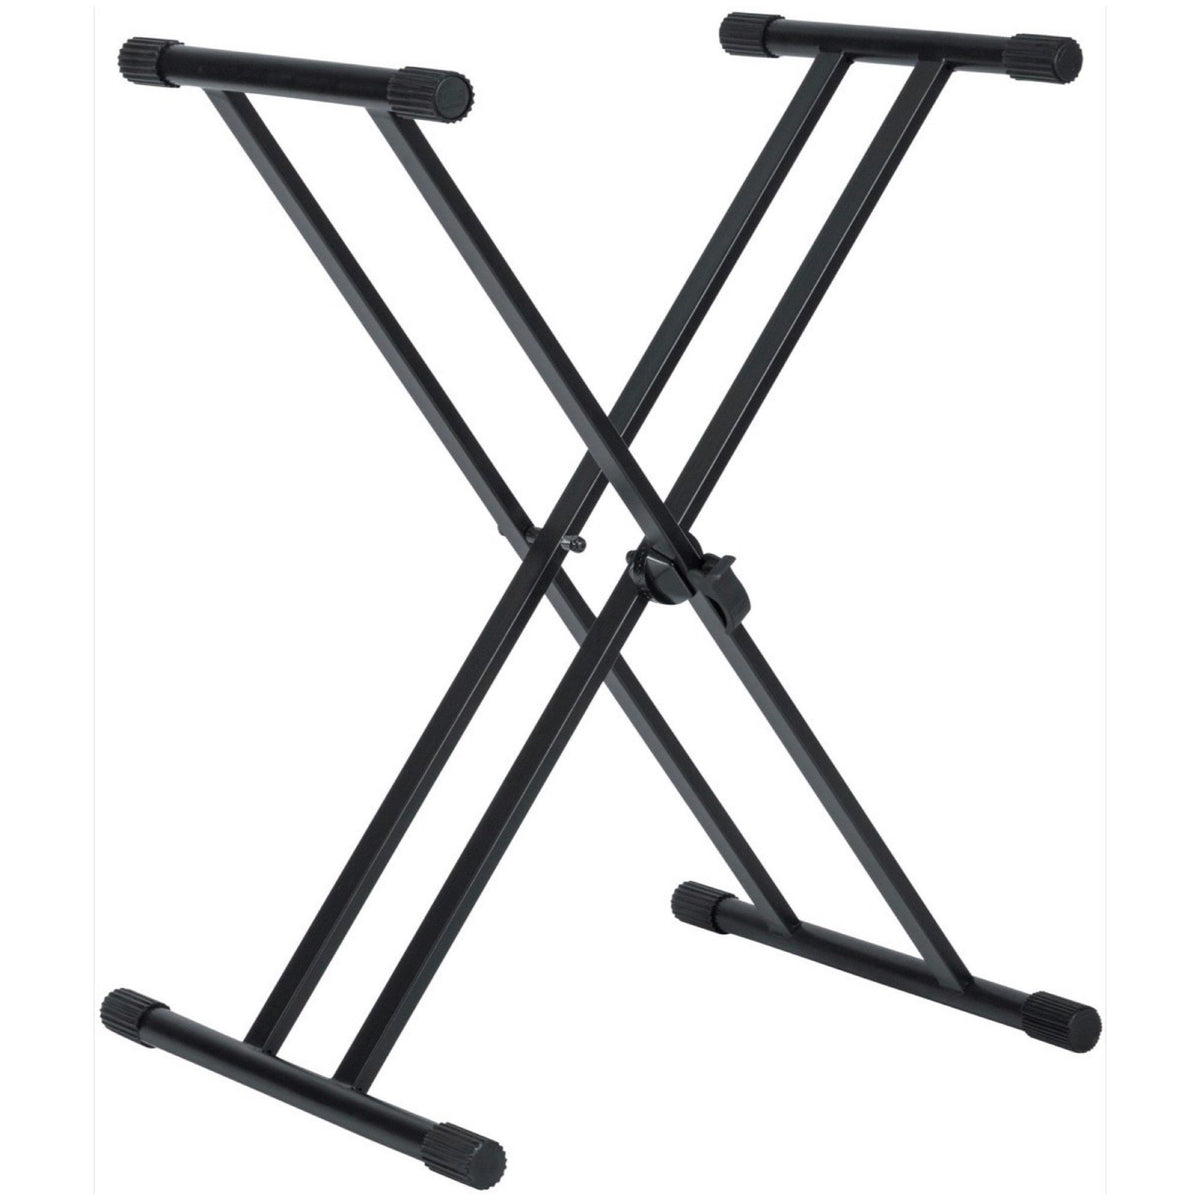 Gator Frameworks GFW-KEY-2000X Deluxe X-Style Keyboard Stand